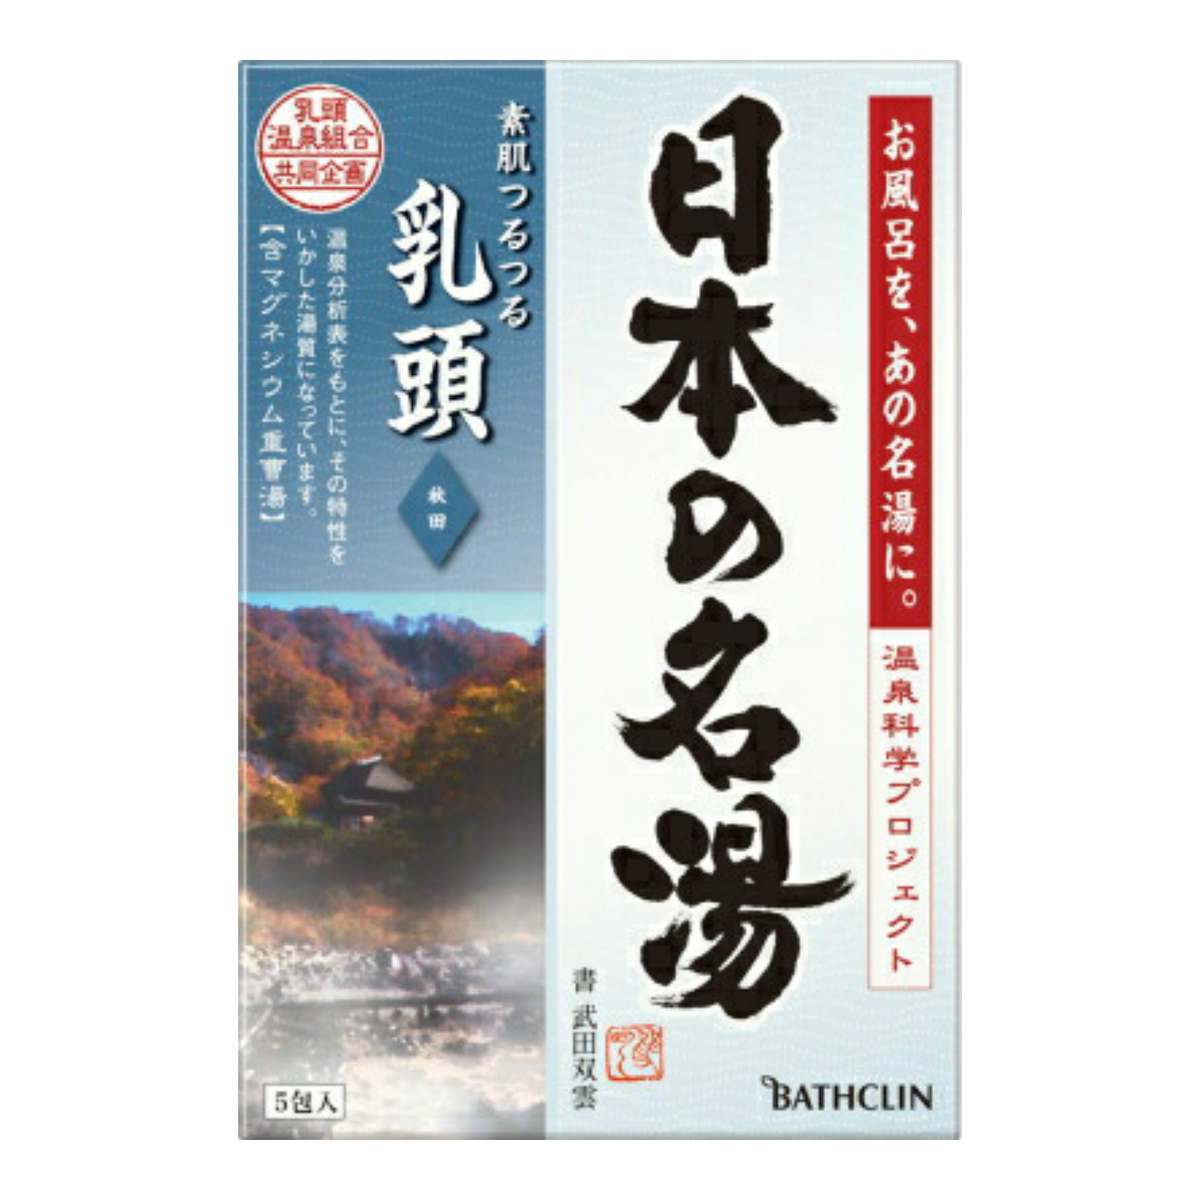 Bathclin Japan hot nipple 30 g × 5 tea pieces (bath salts) water quality: magnesium containing baking soda water and sodium and magnesium bicarbonate hydrogen salt water (4548514135475)